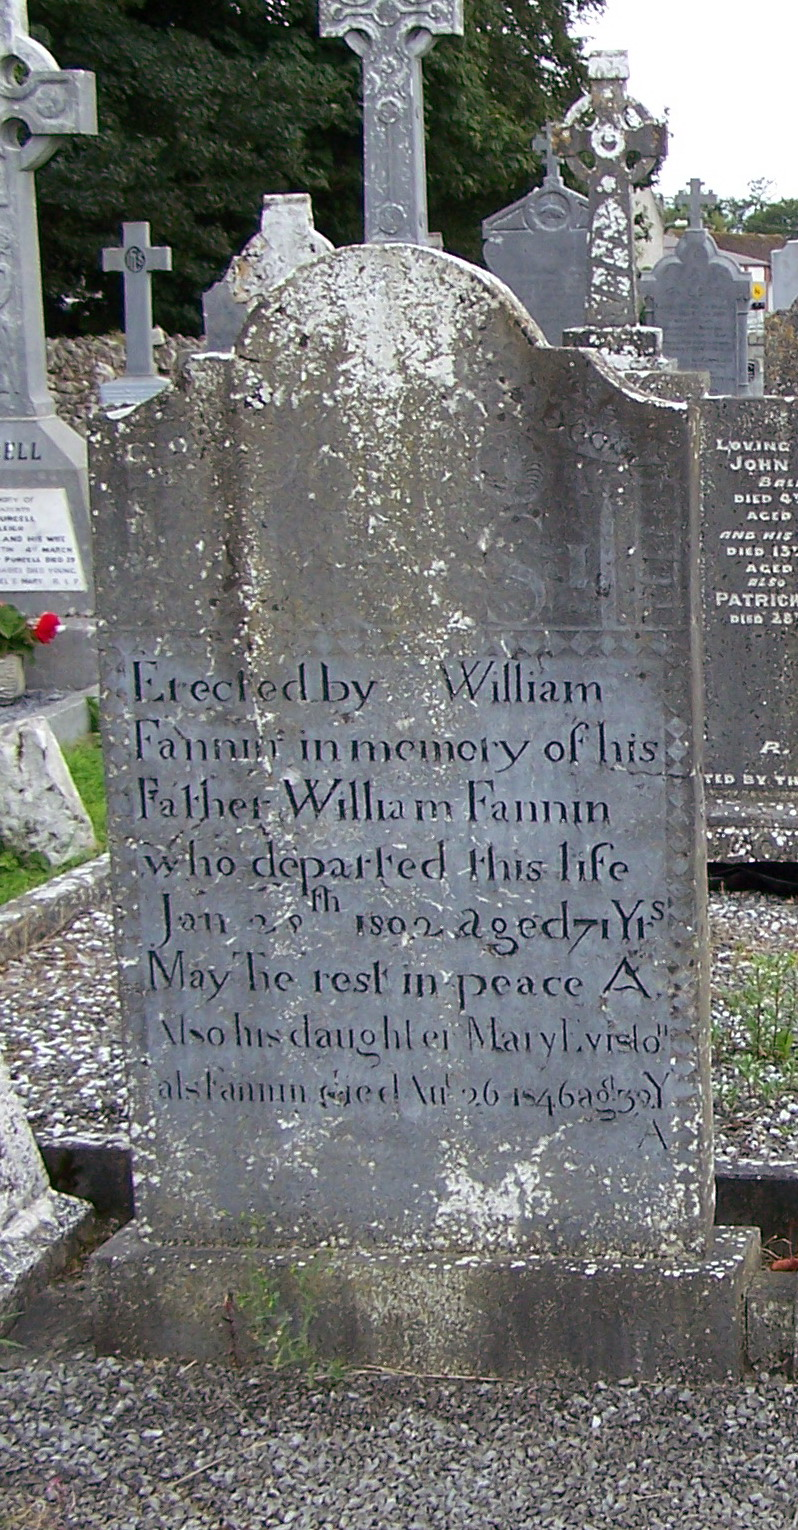 Ballycahill Cemetery William Fannin died 1802